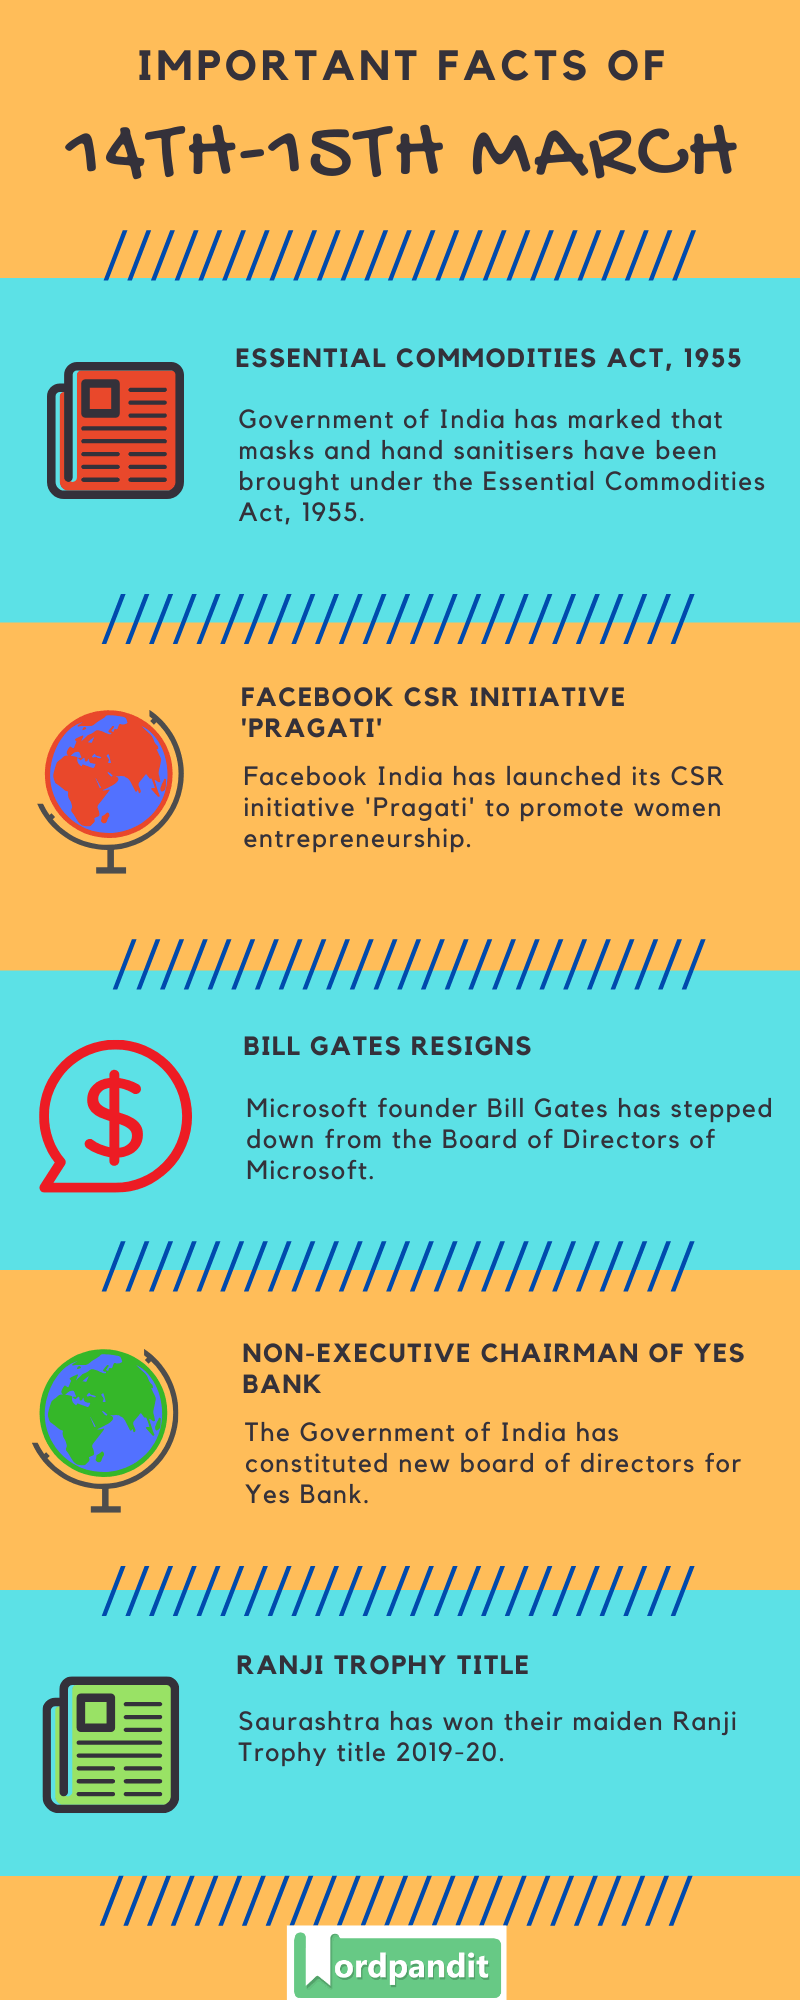 Daily Current Affairs 14 & 15 March 2020 Current Affairs Quiz 14 & 15 March 2020 Current Affairs Infographic